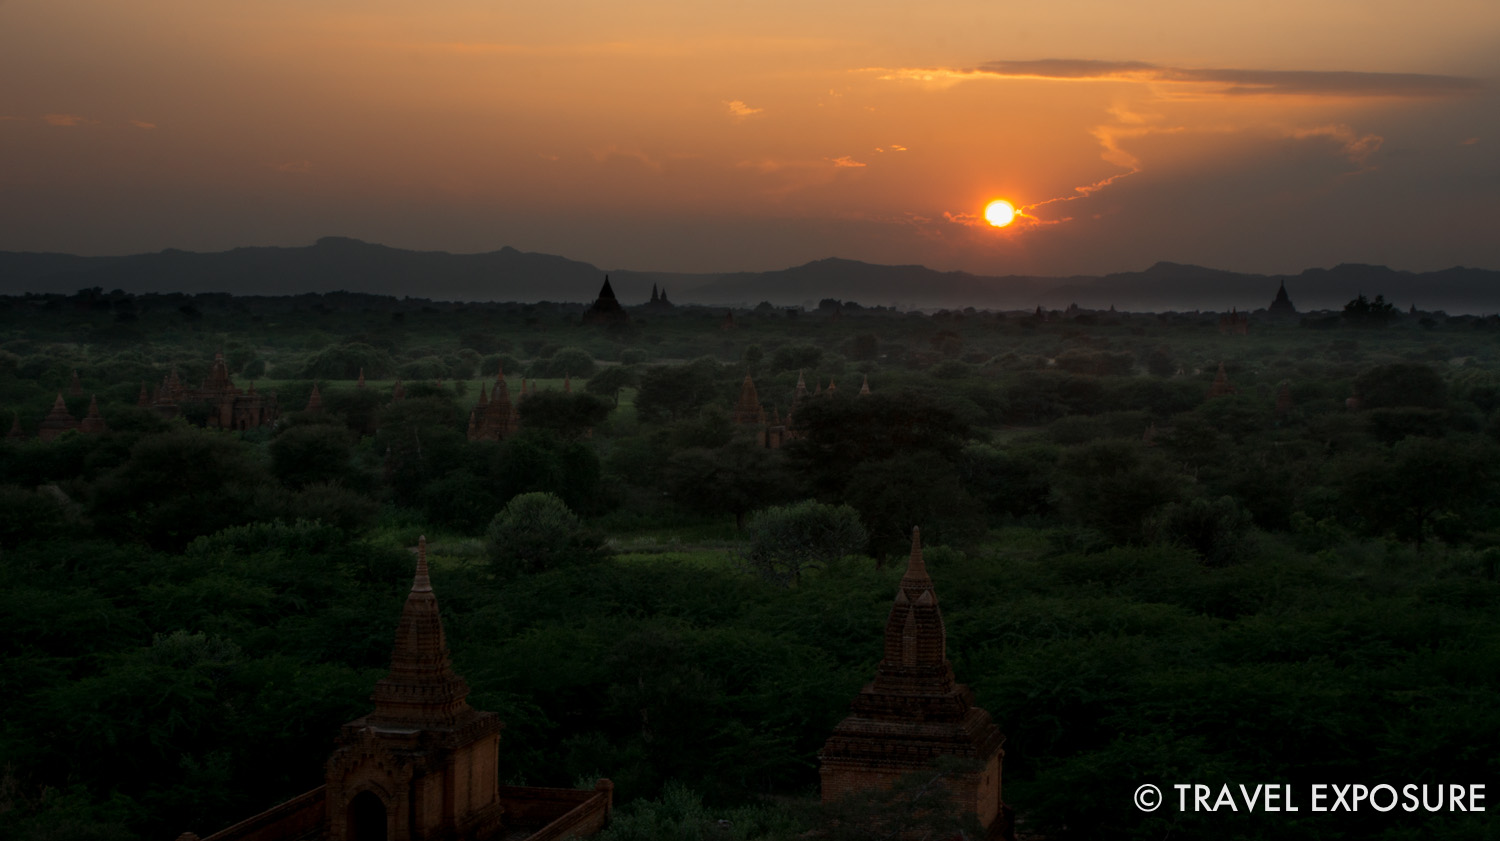 WEEK OF OCTOBER 20 The sun sets in Bagan, Myanmar, home to the largest concentration of Buddhist temples, pagodas, stupas and ruins in the world.